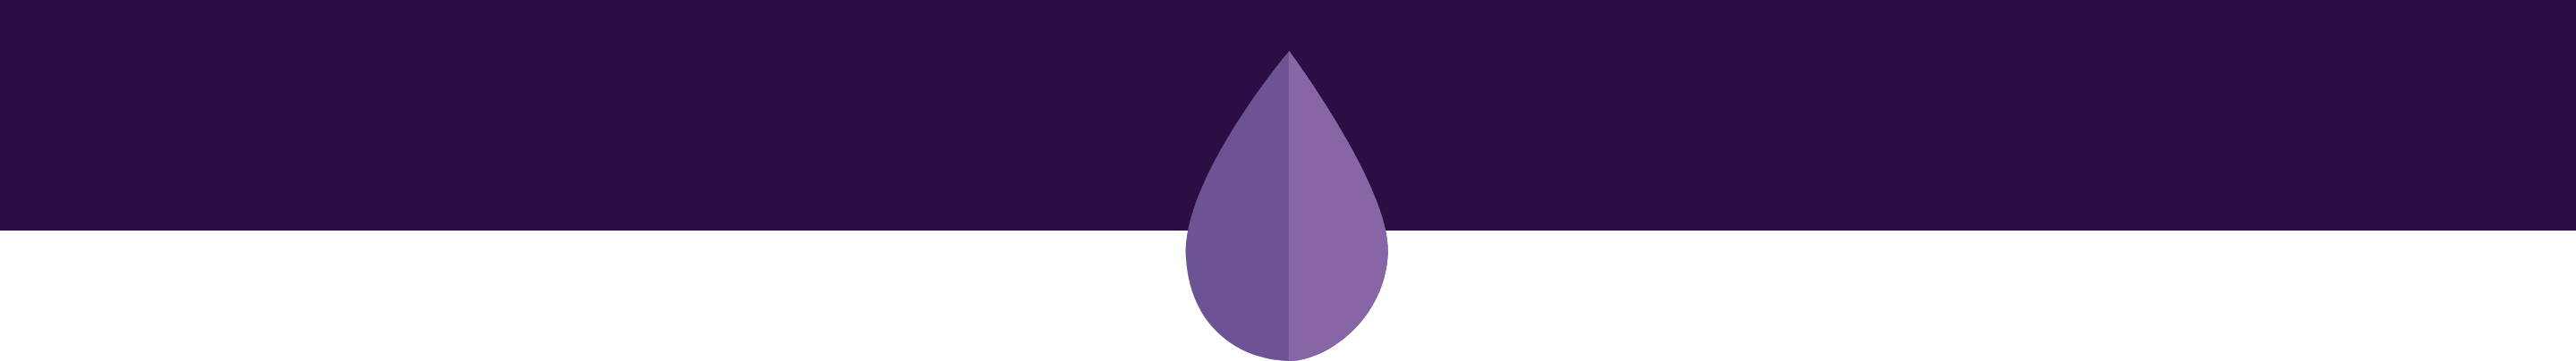 purple wax drop icon